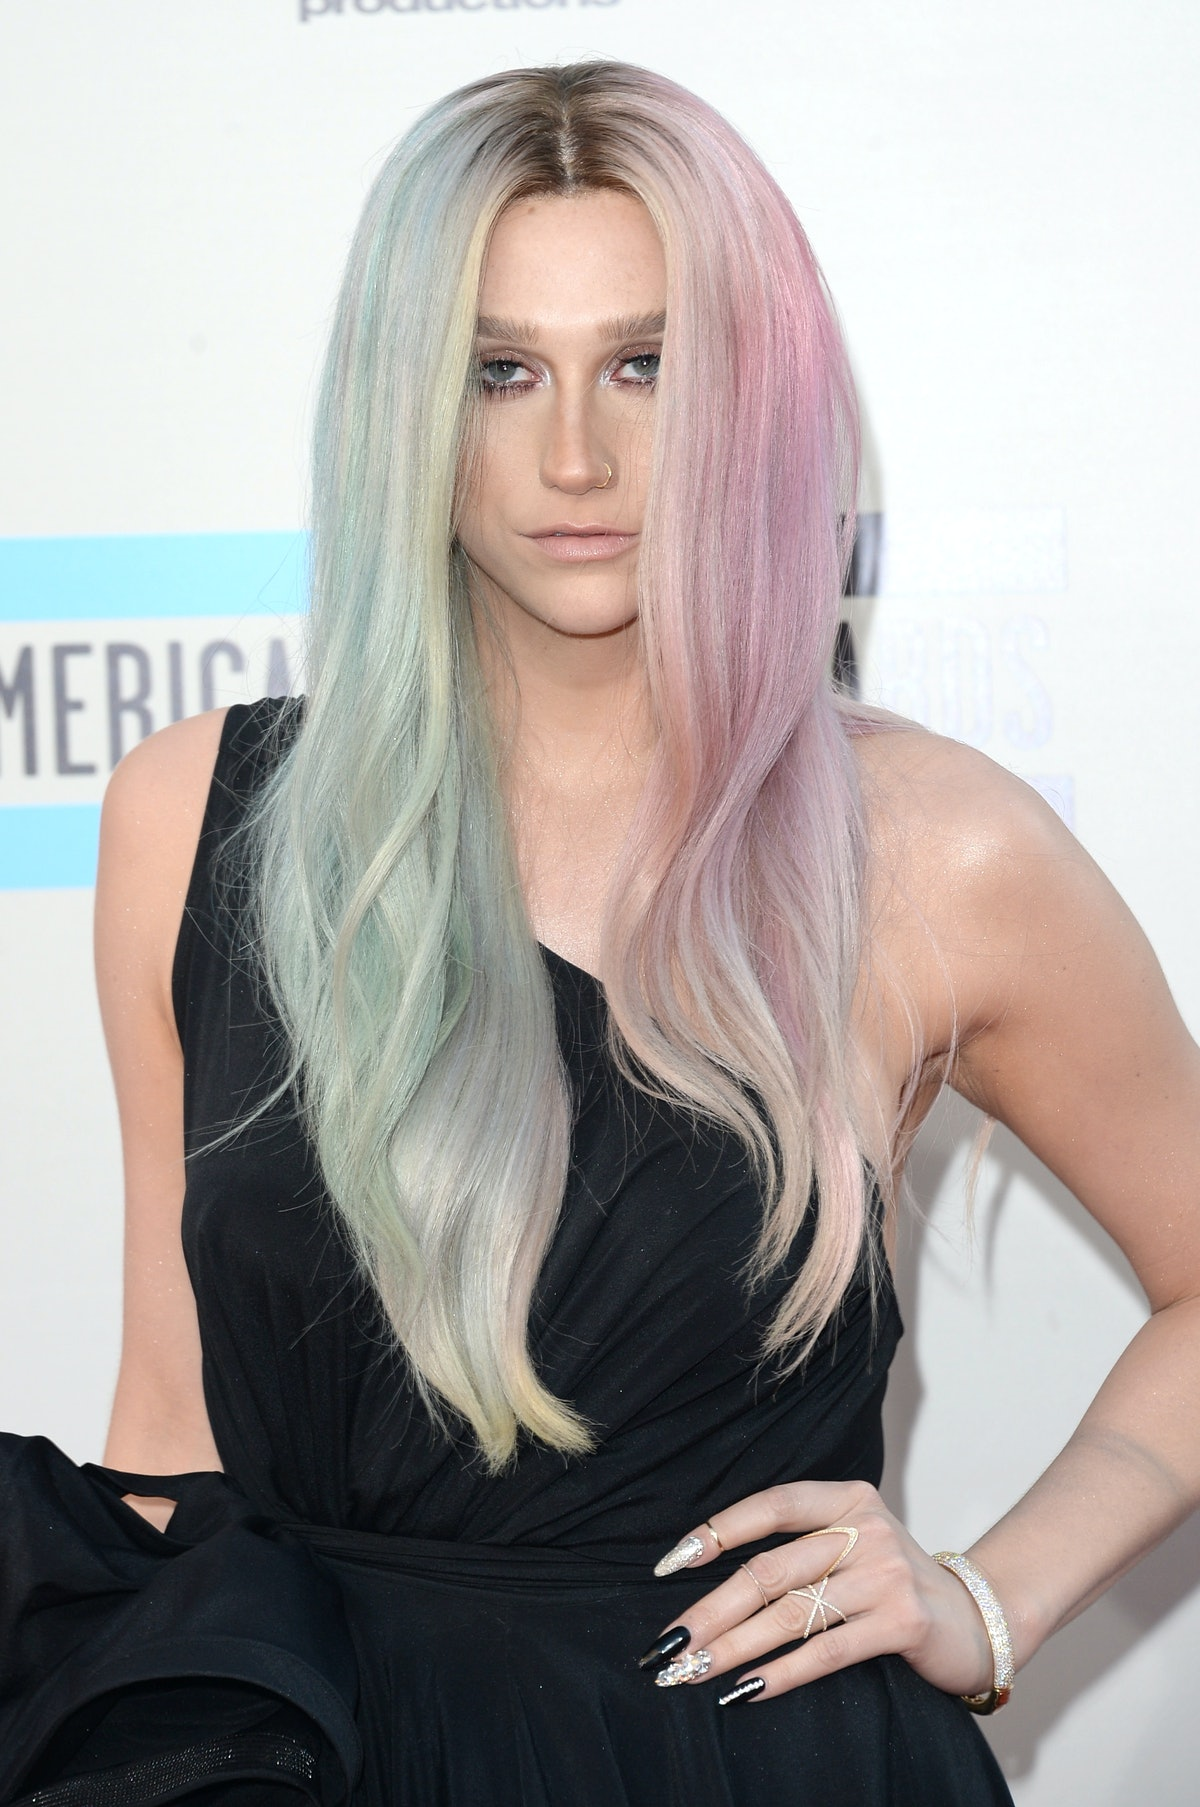 18And Abused Great kesha sues producer dr. luke for sexual assault & emotional abuse